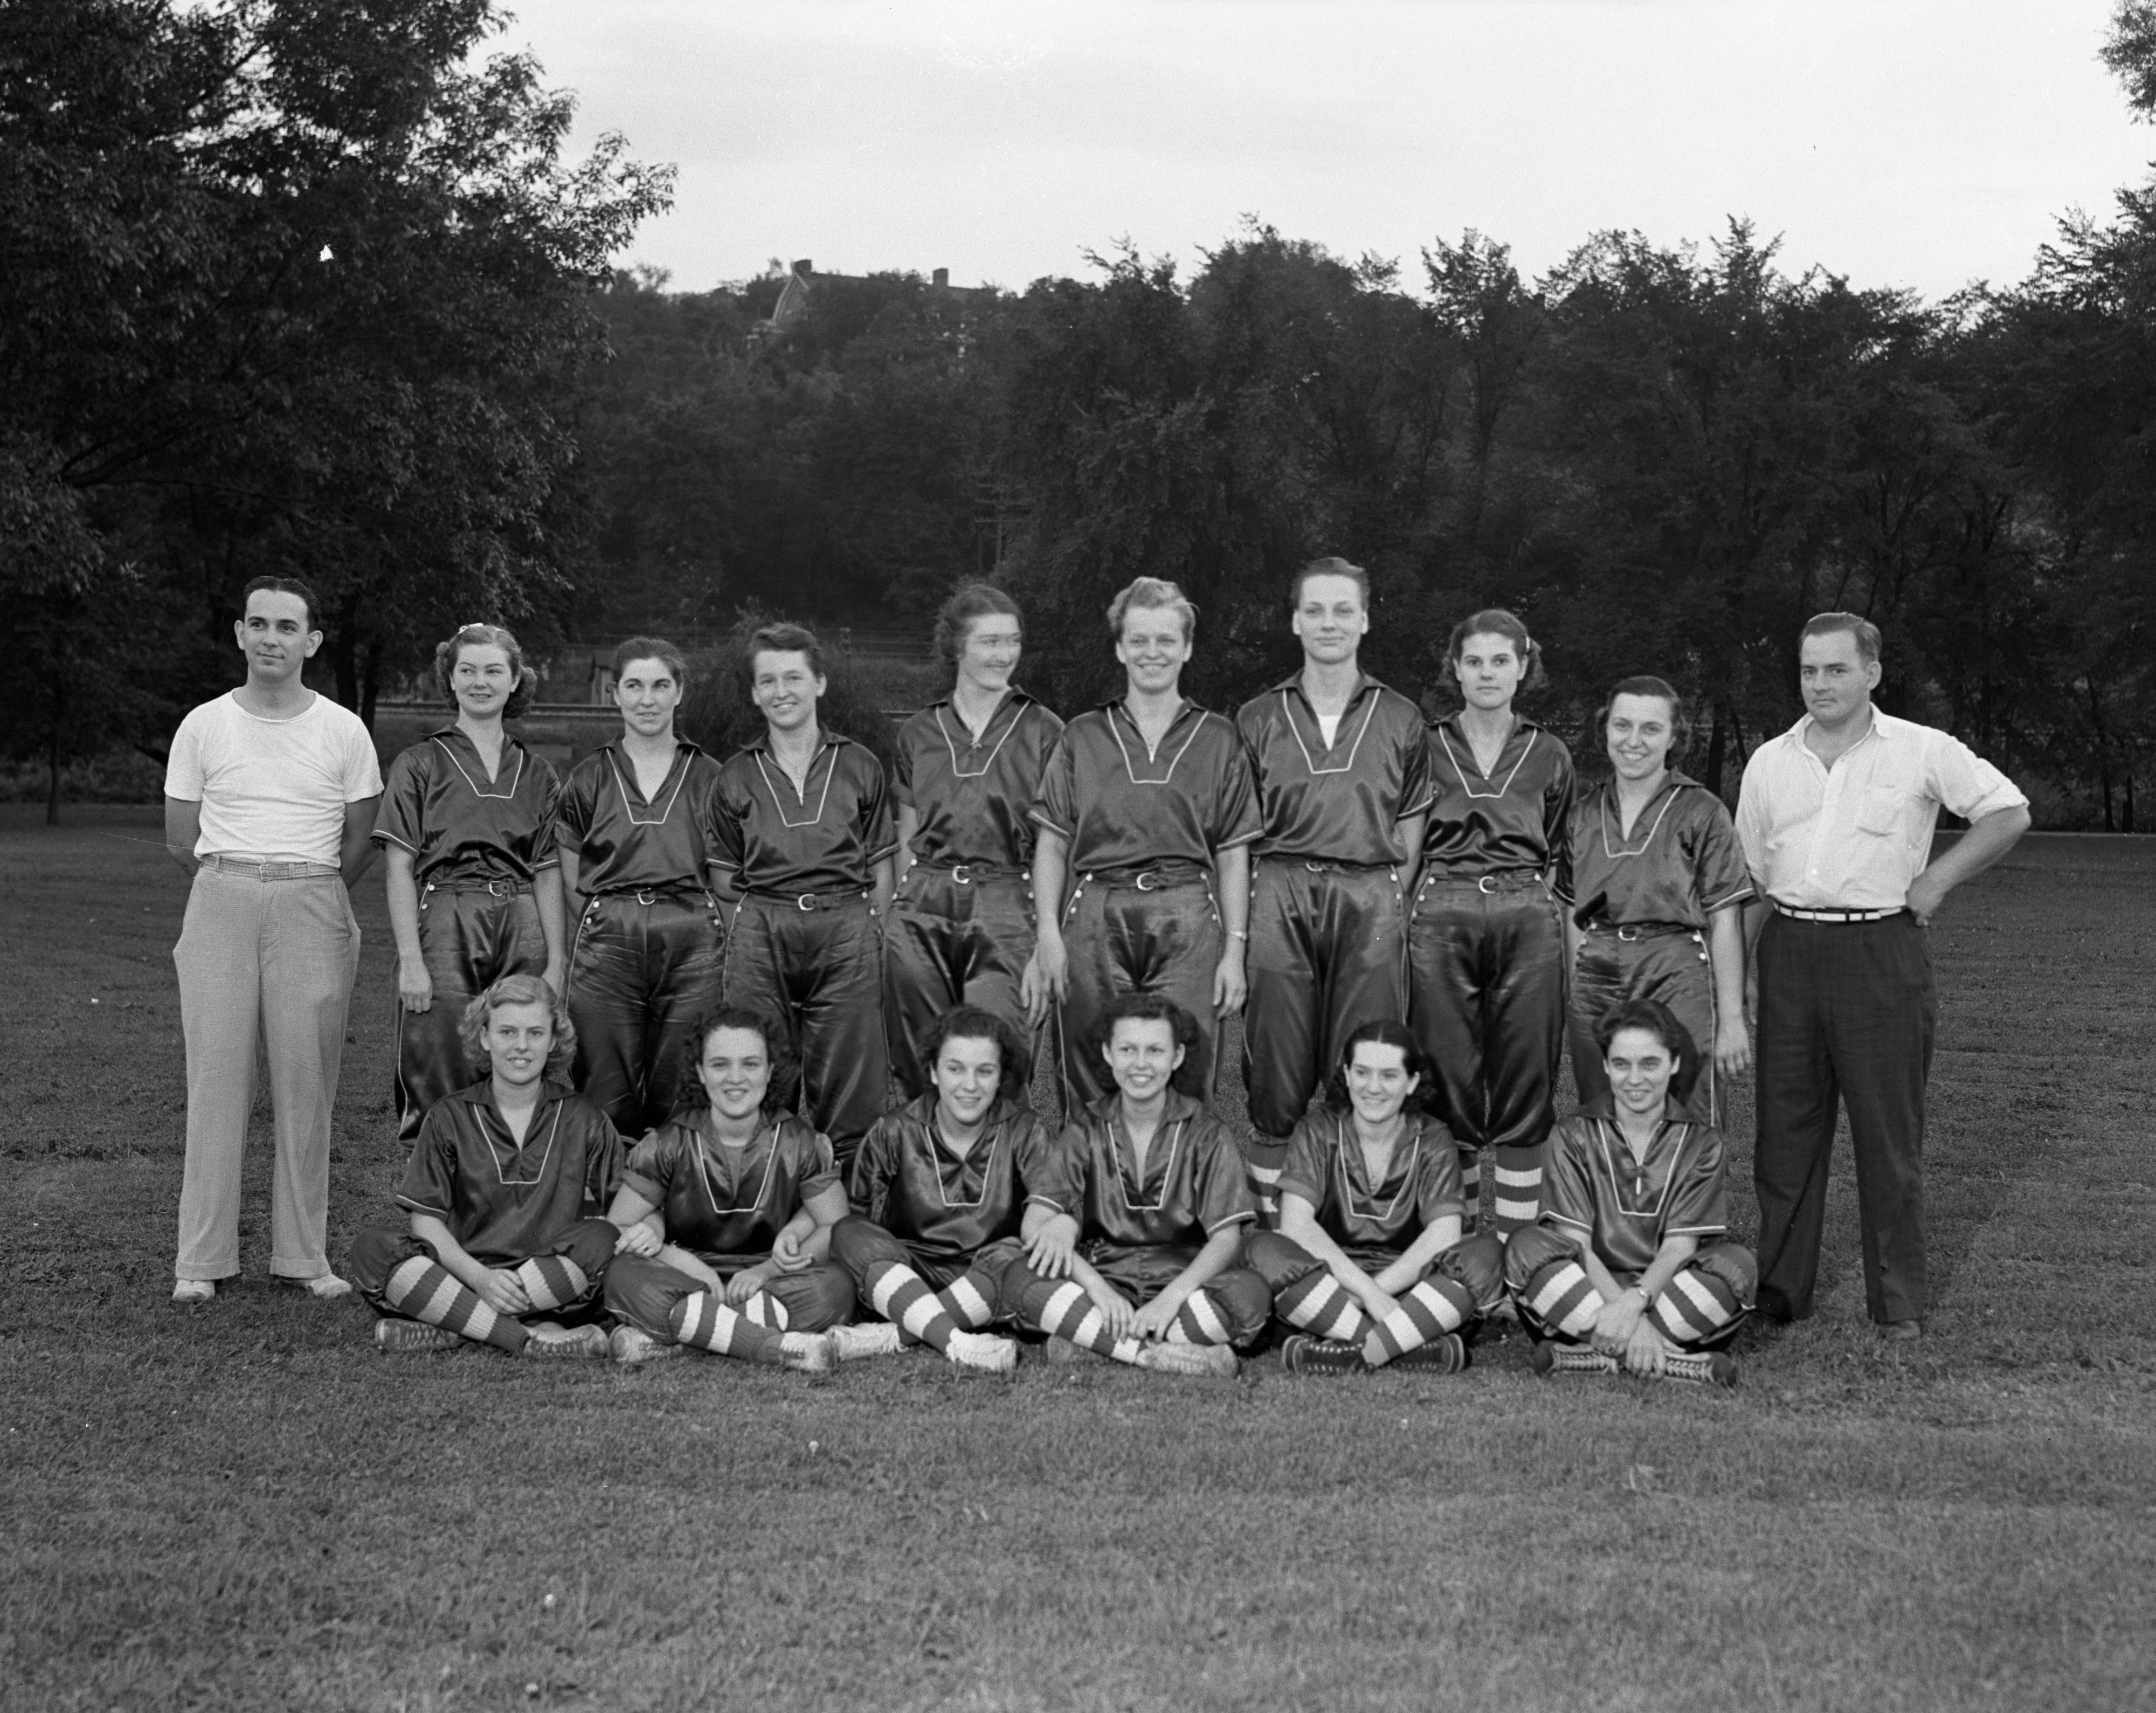 Edwards Brothers Girls' City Softball Champions, 1937 image